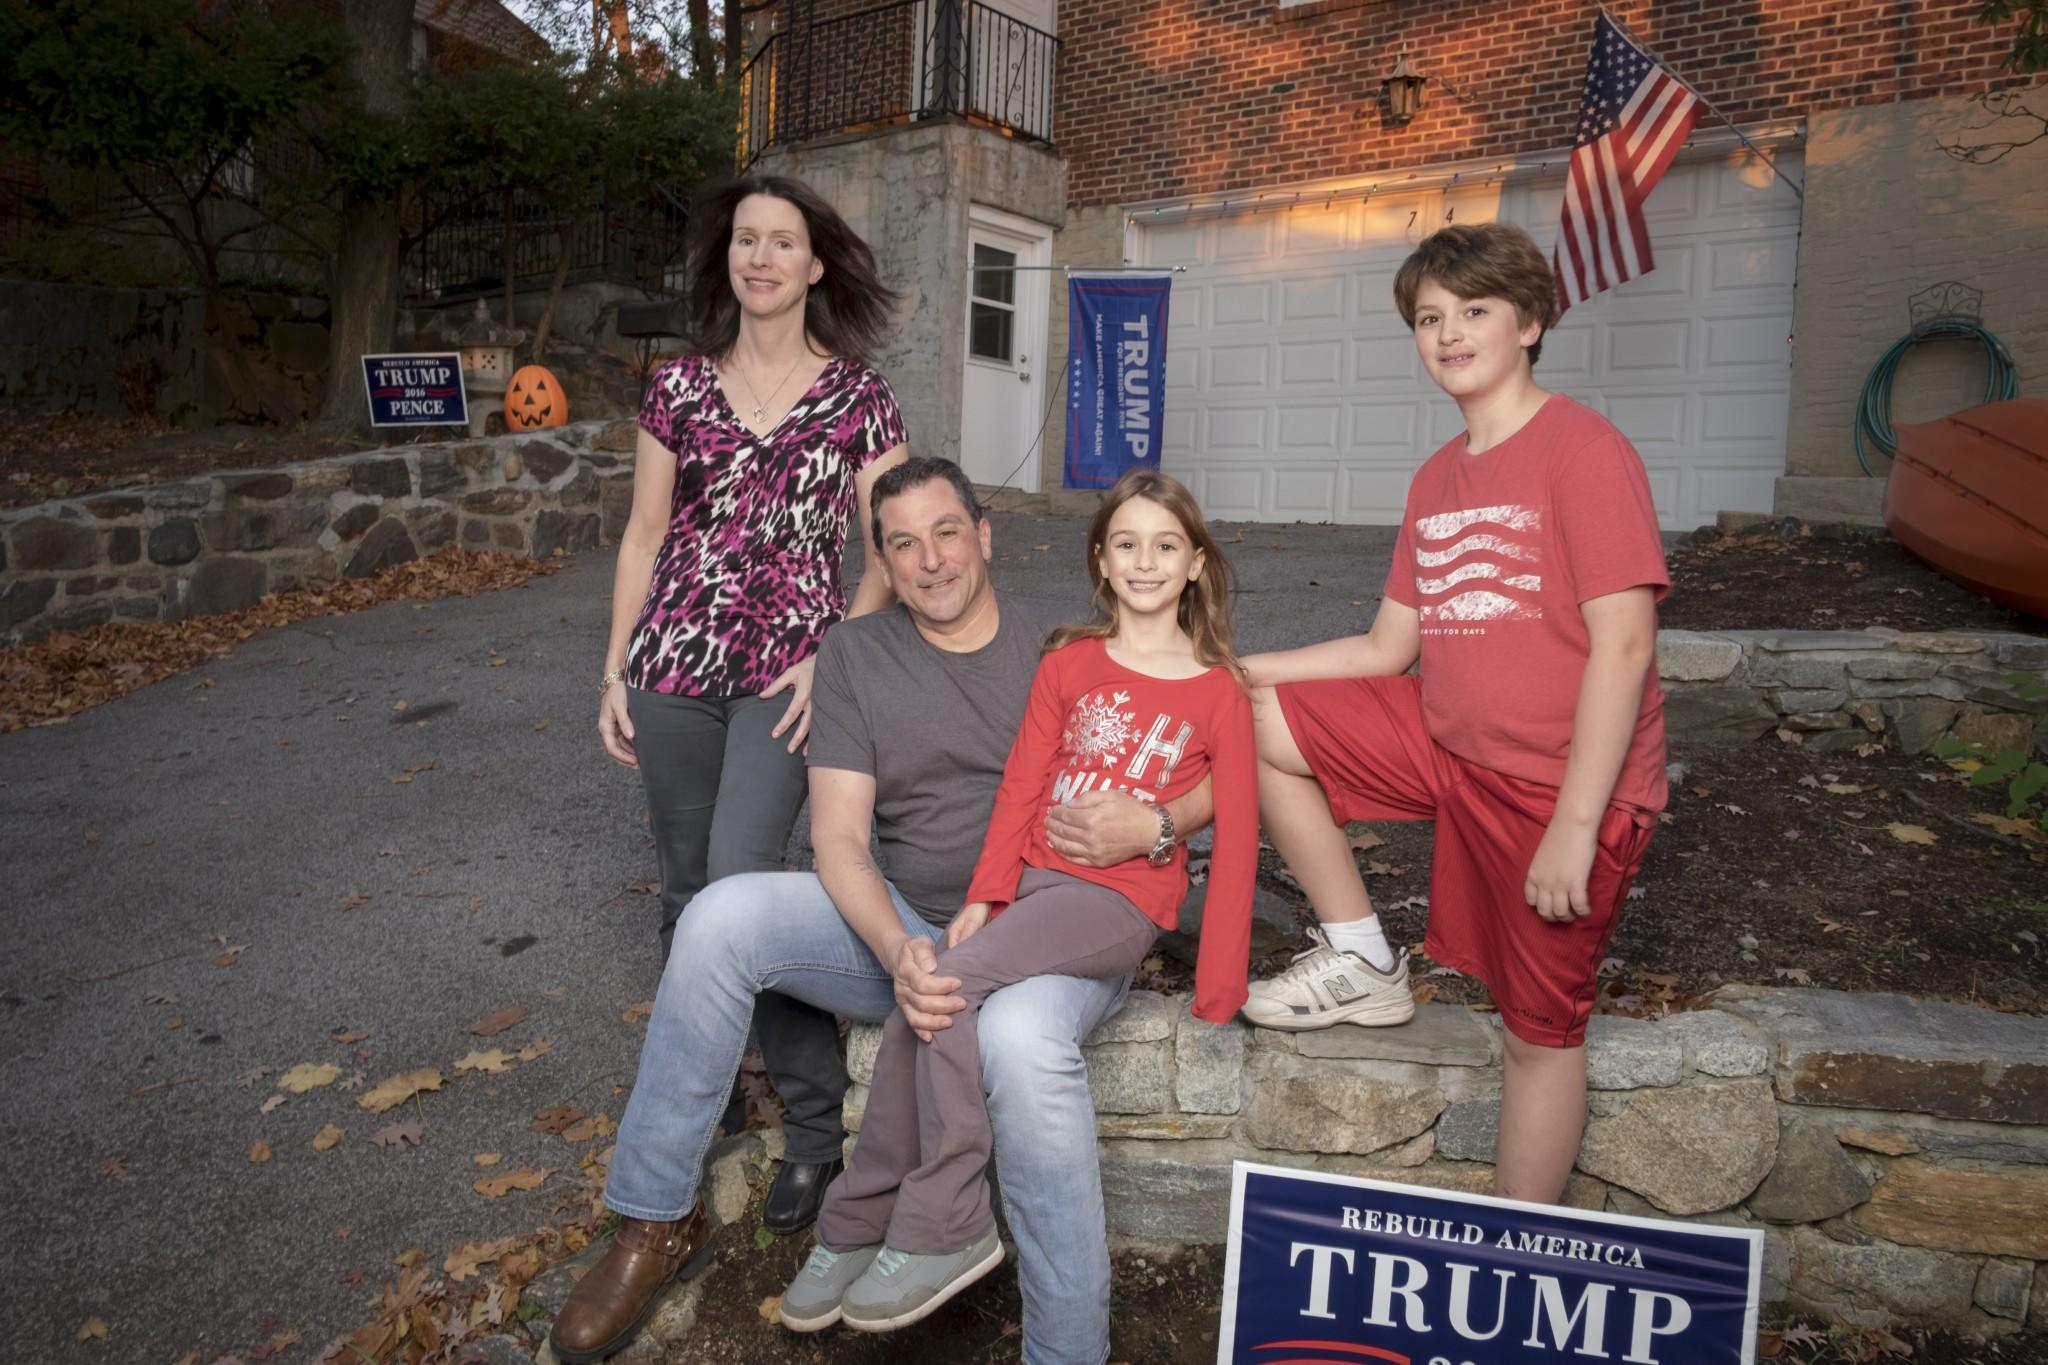 Trump supporter Chris Fresiello with his wife GiGi and kids at their New York home on November 17, 2016. (Photo: David Scott Holloway for Yahoo News)